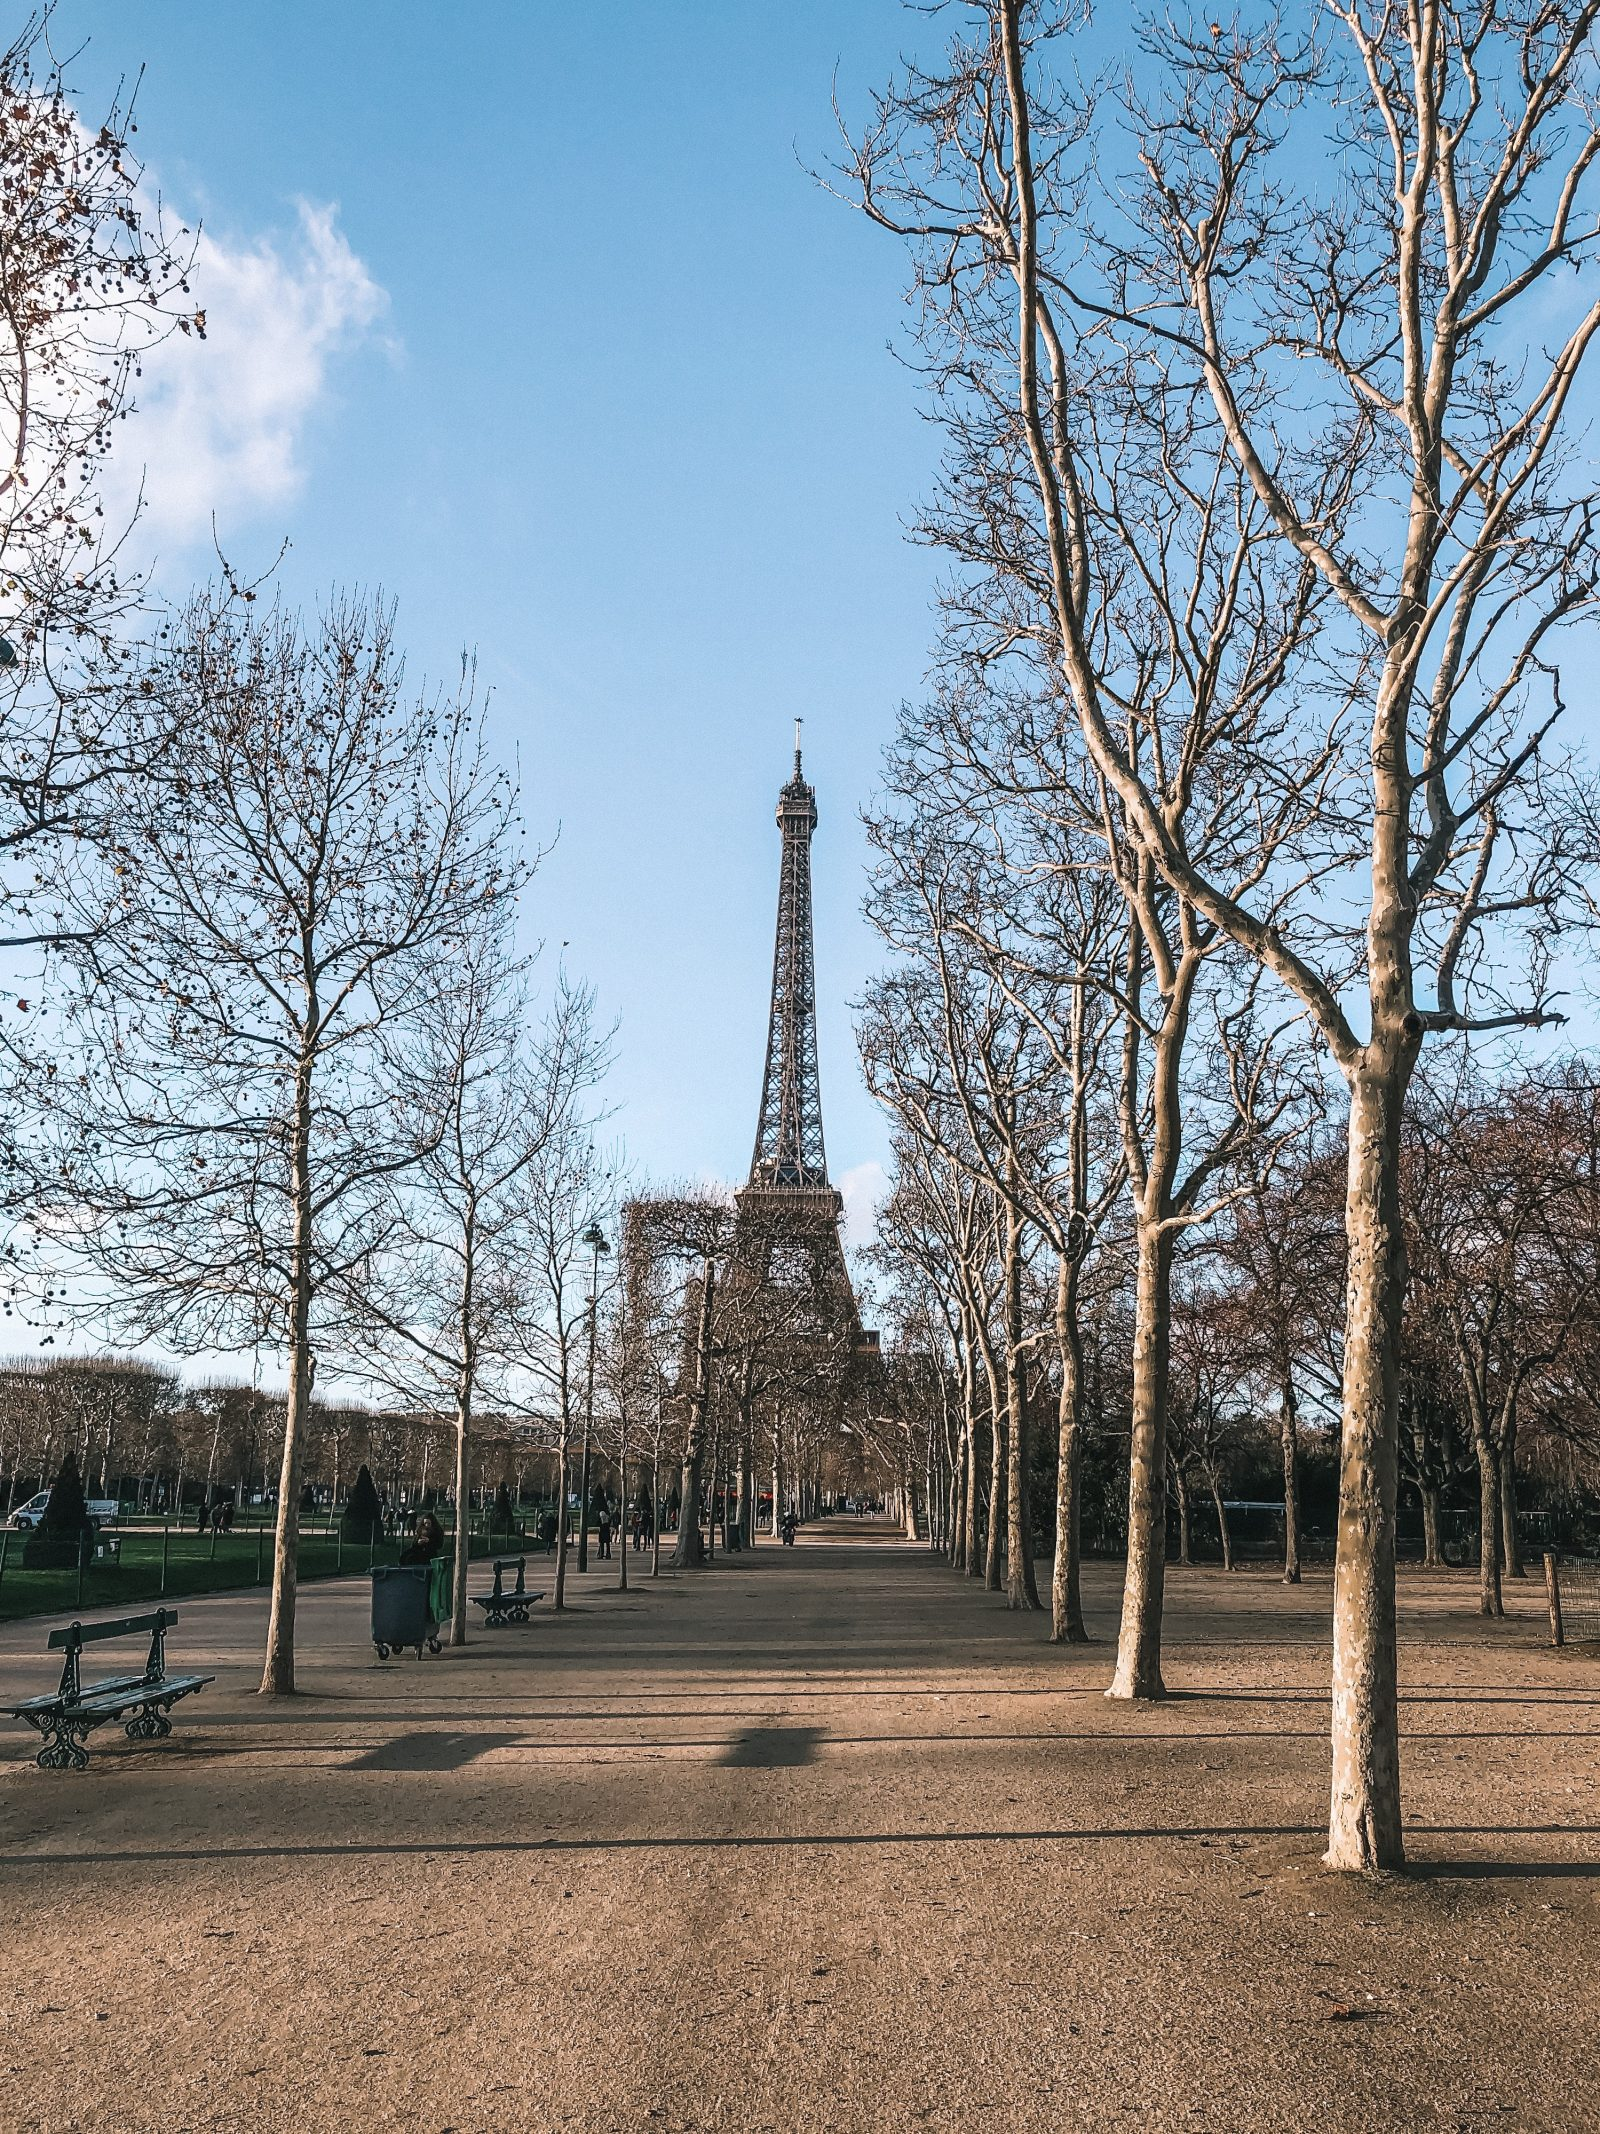 Paris City Guide - Eiffel Tower